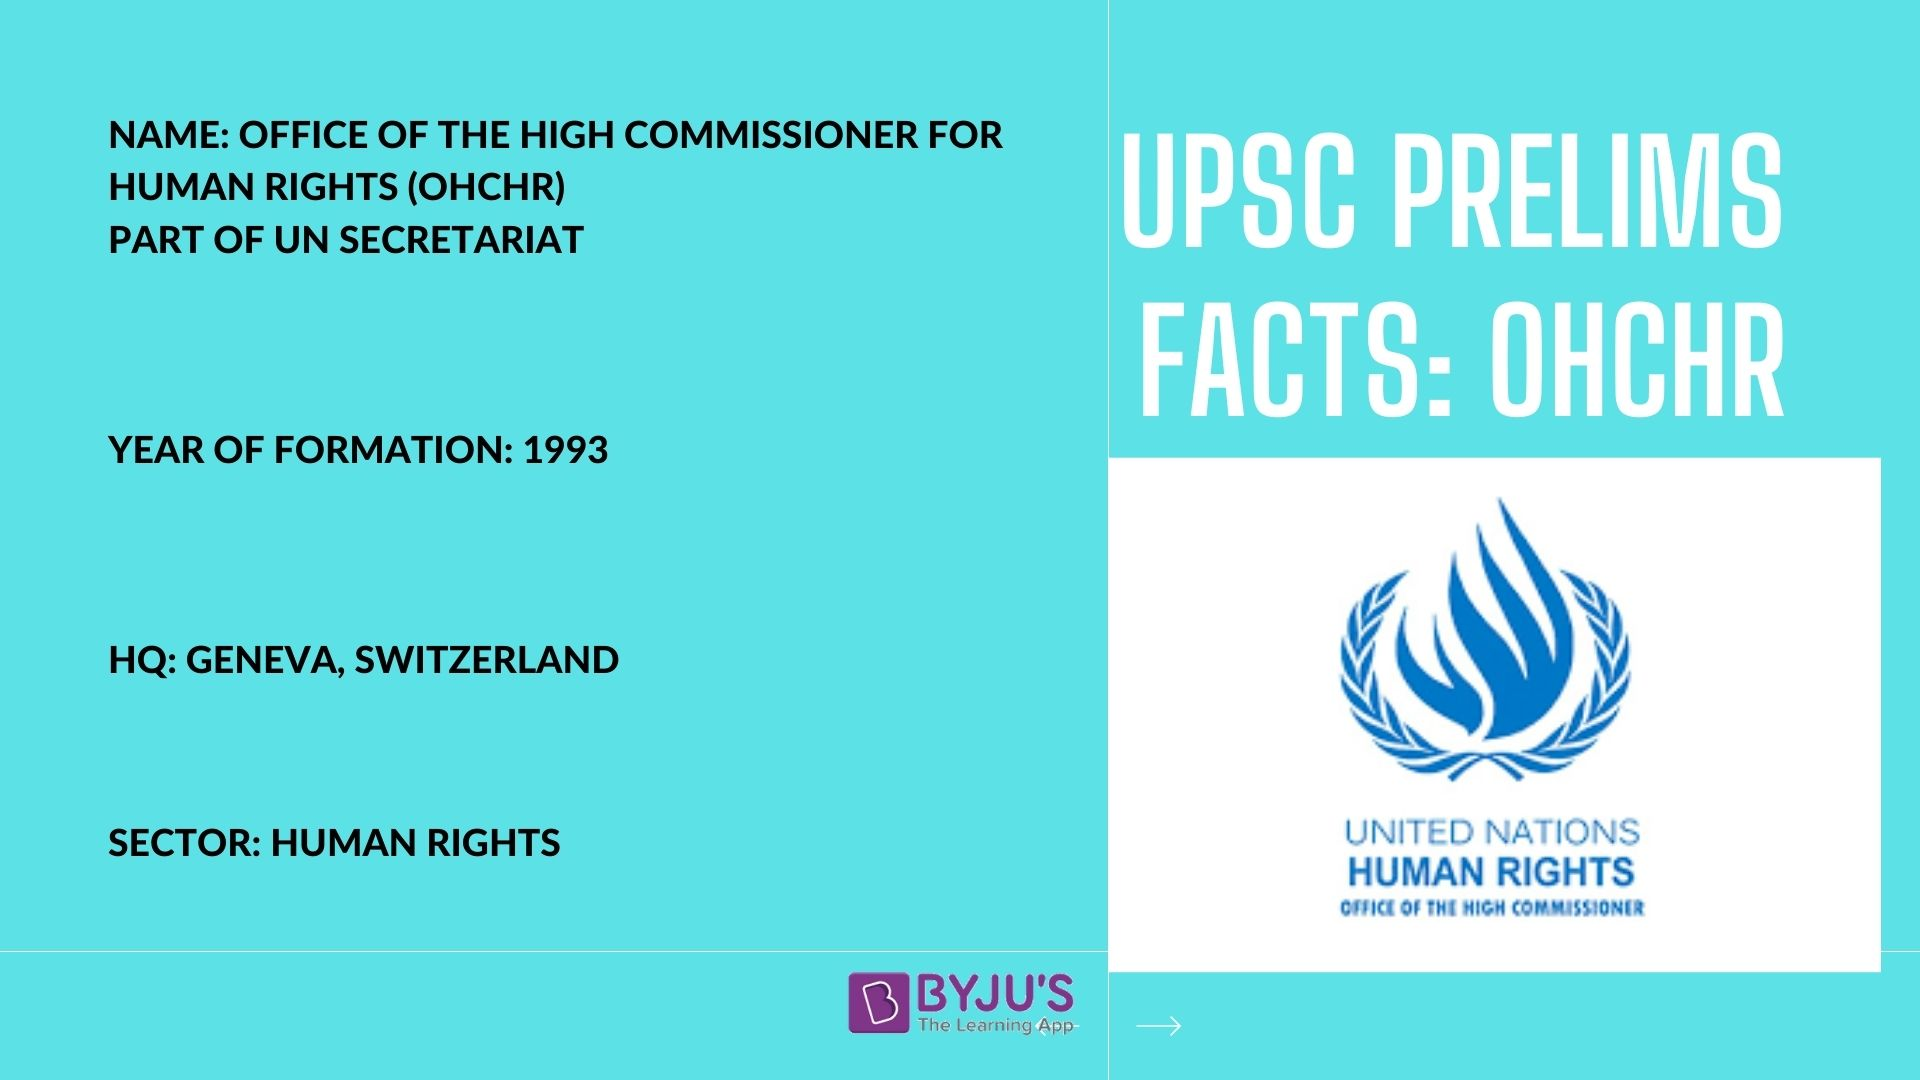 UPSC Prelims Facts - OHCHR